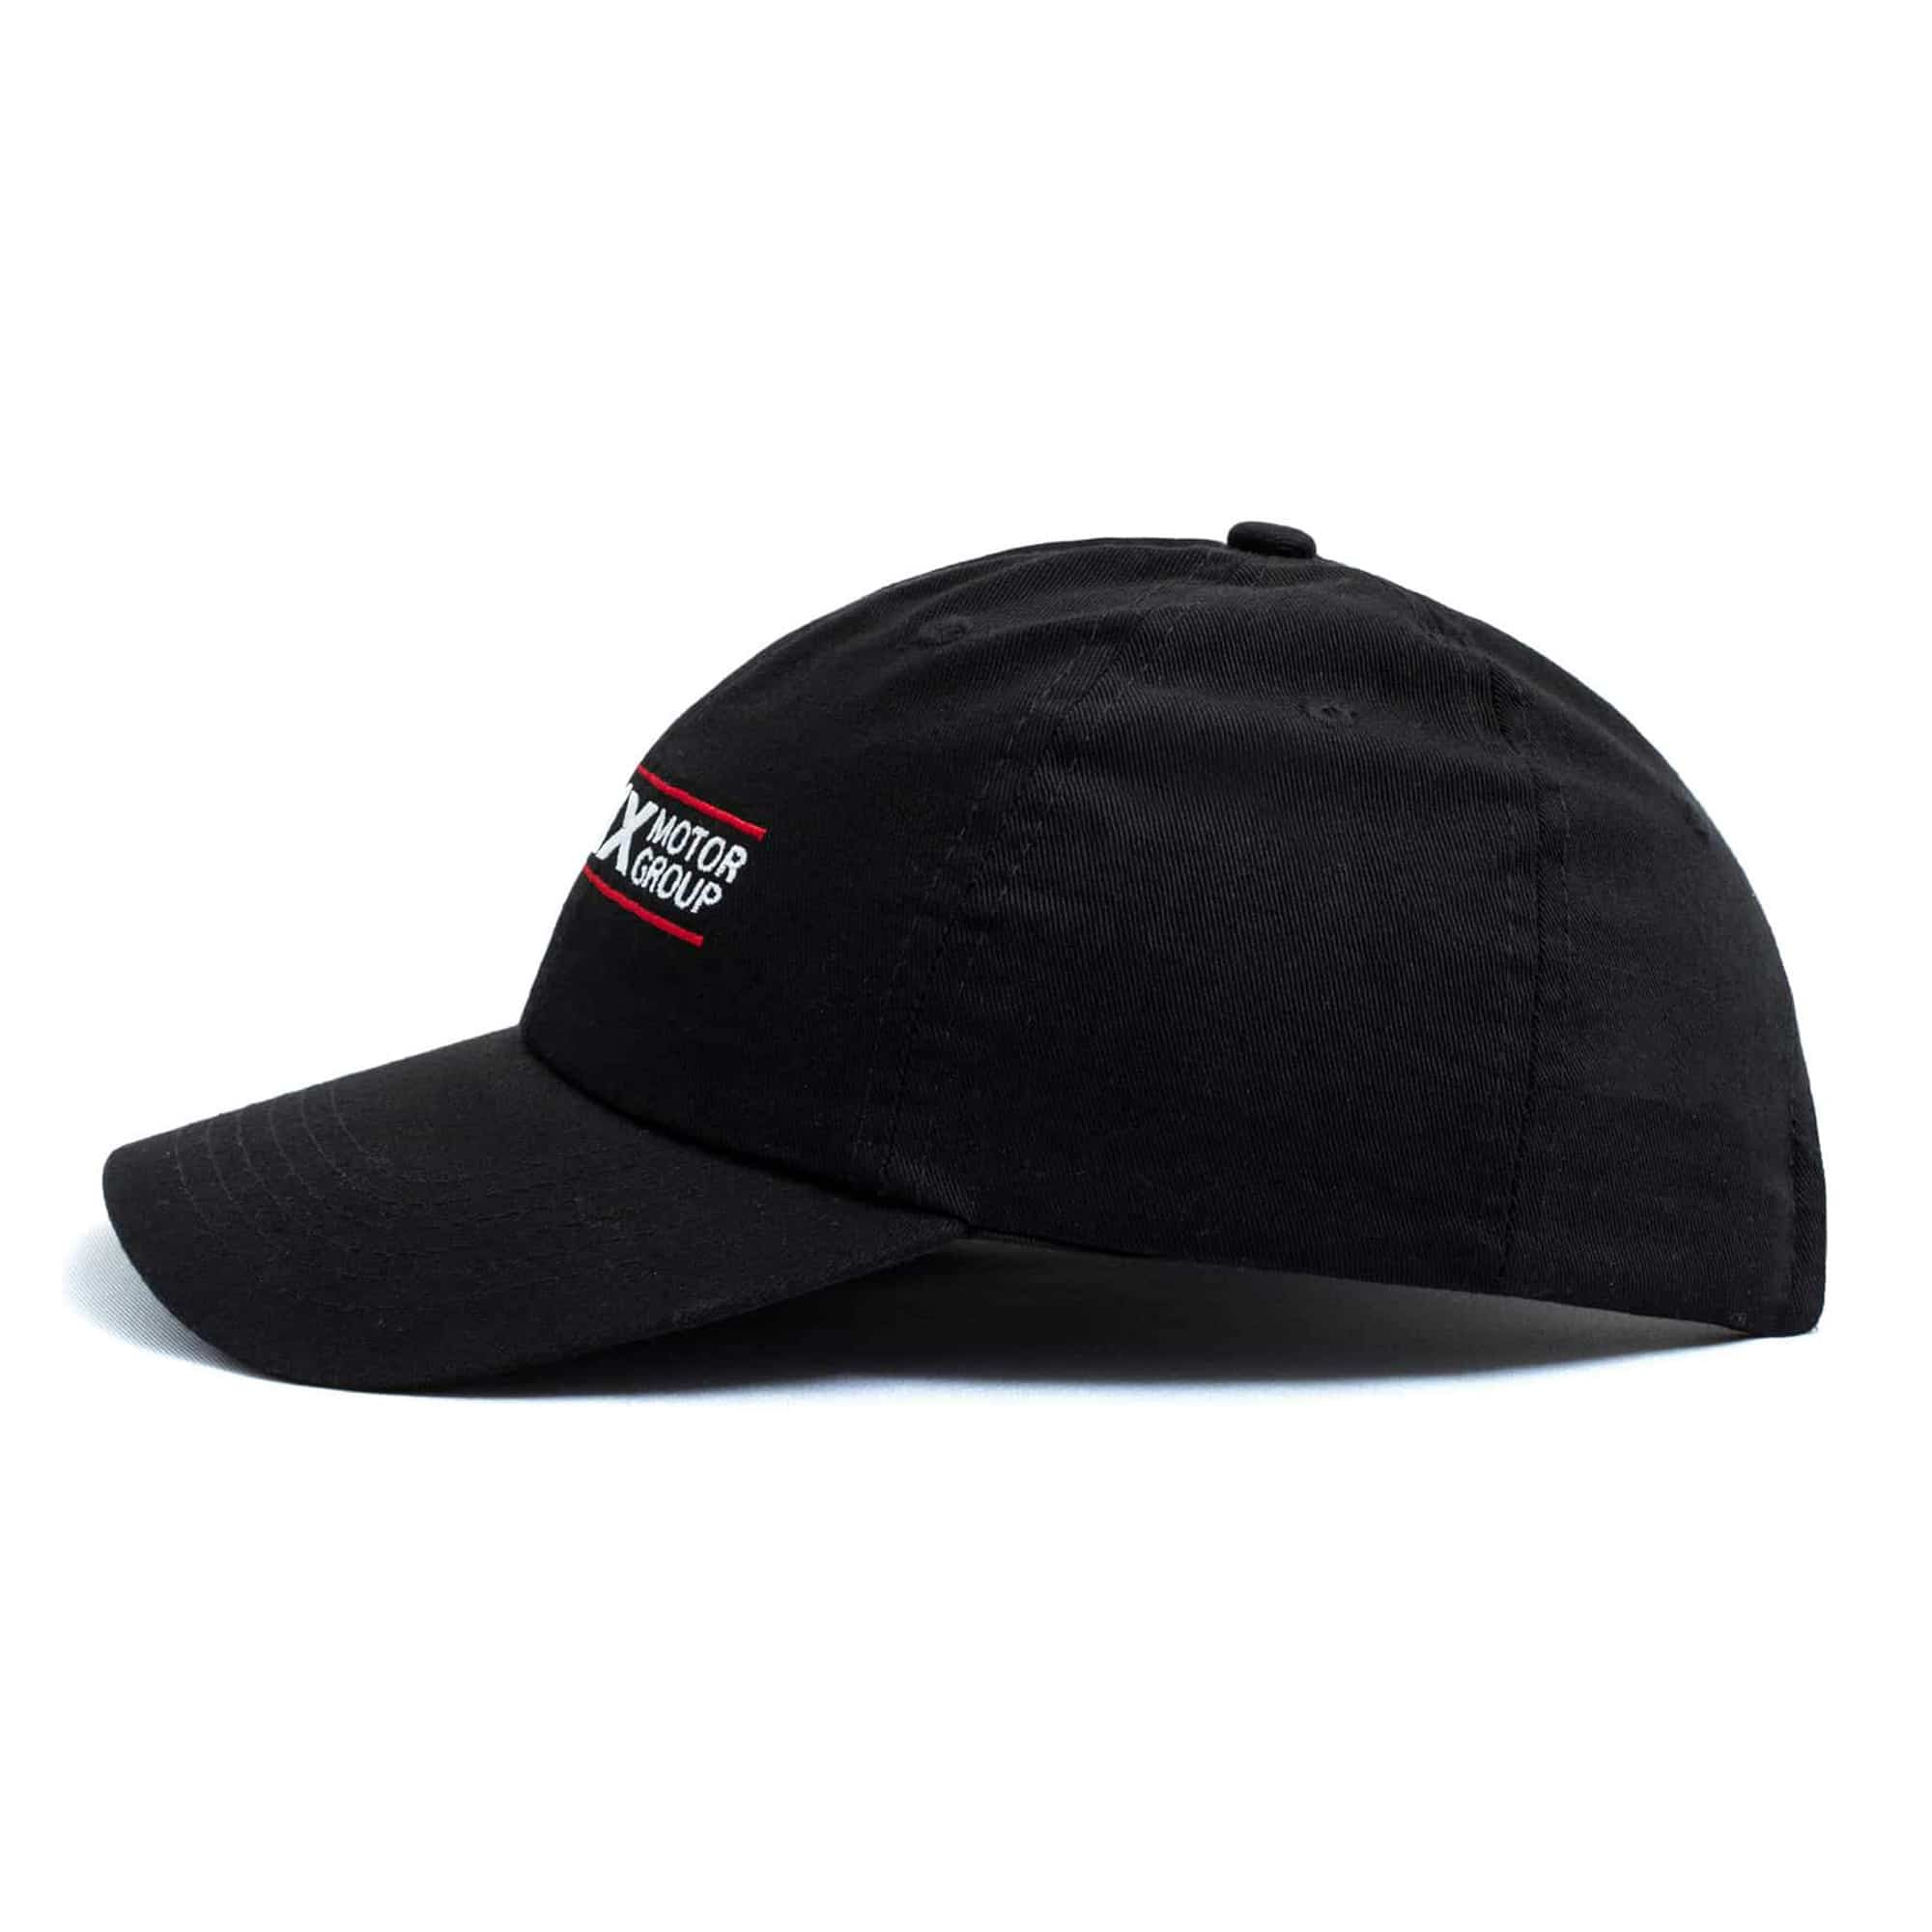 '116 Motor Group' Dad Hat